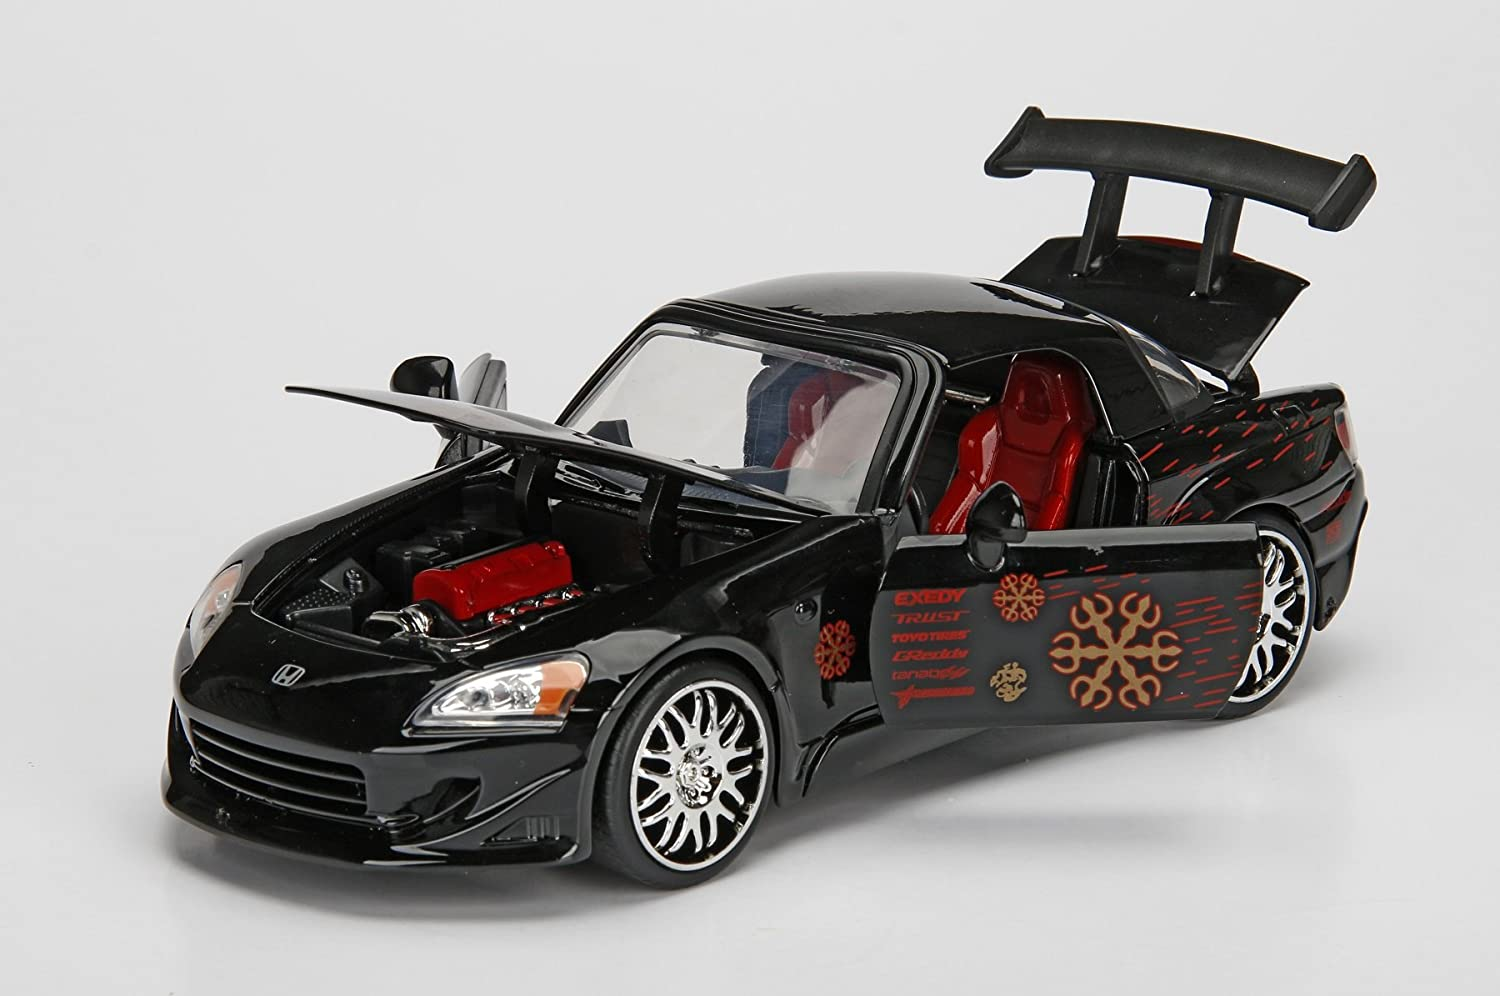 Jada Toys The Fast The Furious Movie 1 Johnny Tran\'s 2000 Honda S2000 diecast Collectible Toy Vehicle car 1 24 Scale Black with Decal